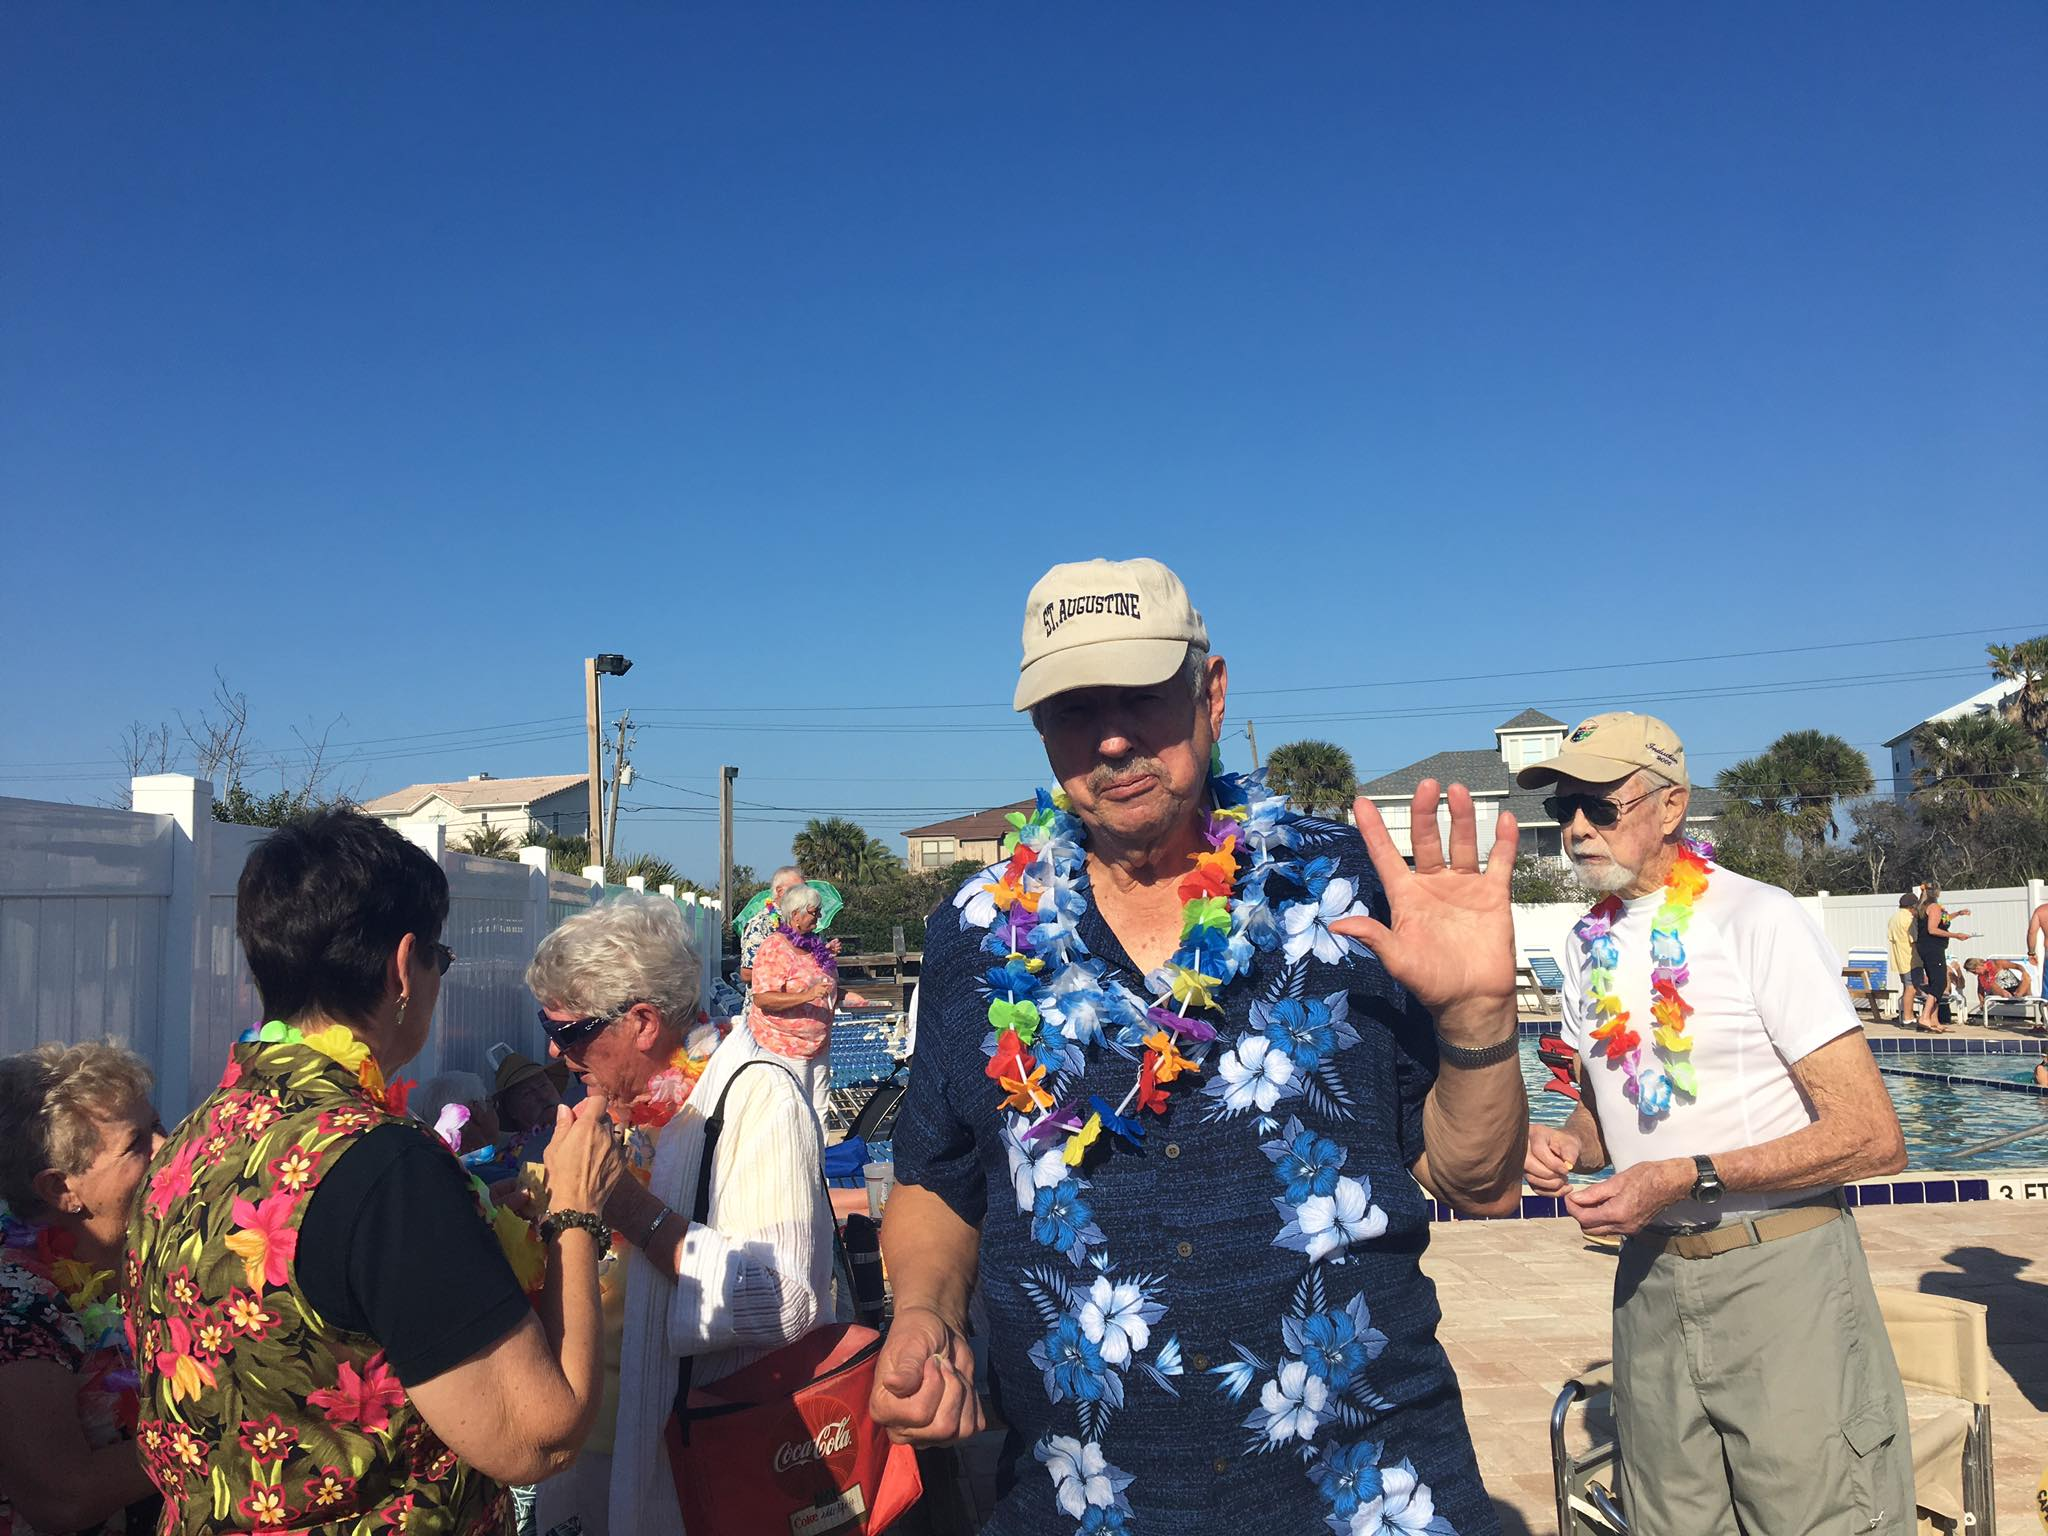 man wearing lei surrounded by other people